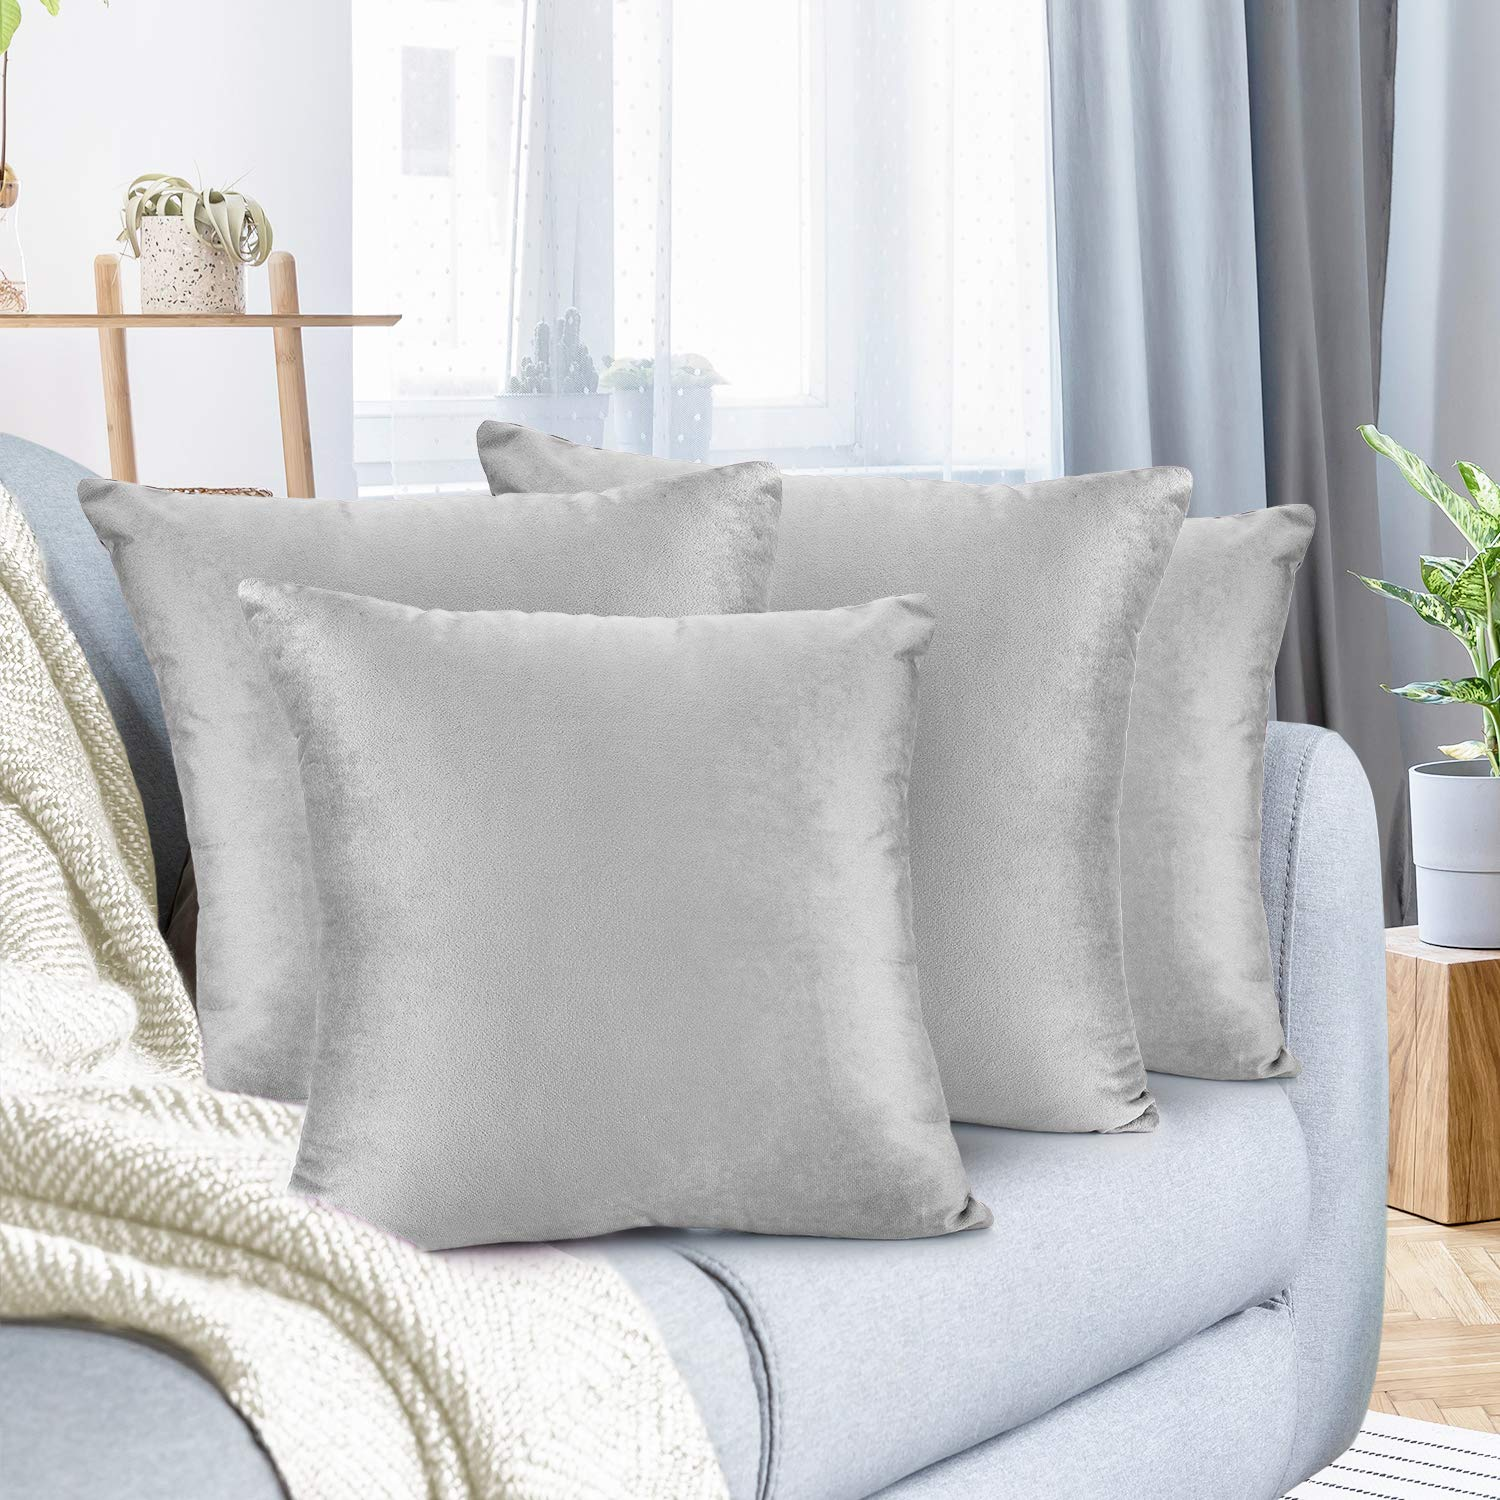 """Nestl Bedding Throw Pillow Cover 20"""" x 20"""" Soft Square Decorative Throw Pillow Covers Cozy Velvet Cushion Case for Sofa Couch Bedroom, Set of 4, Light Gray"""